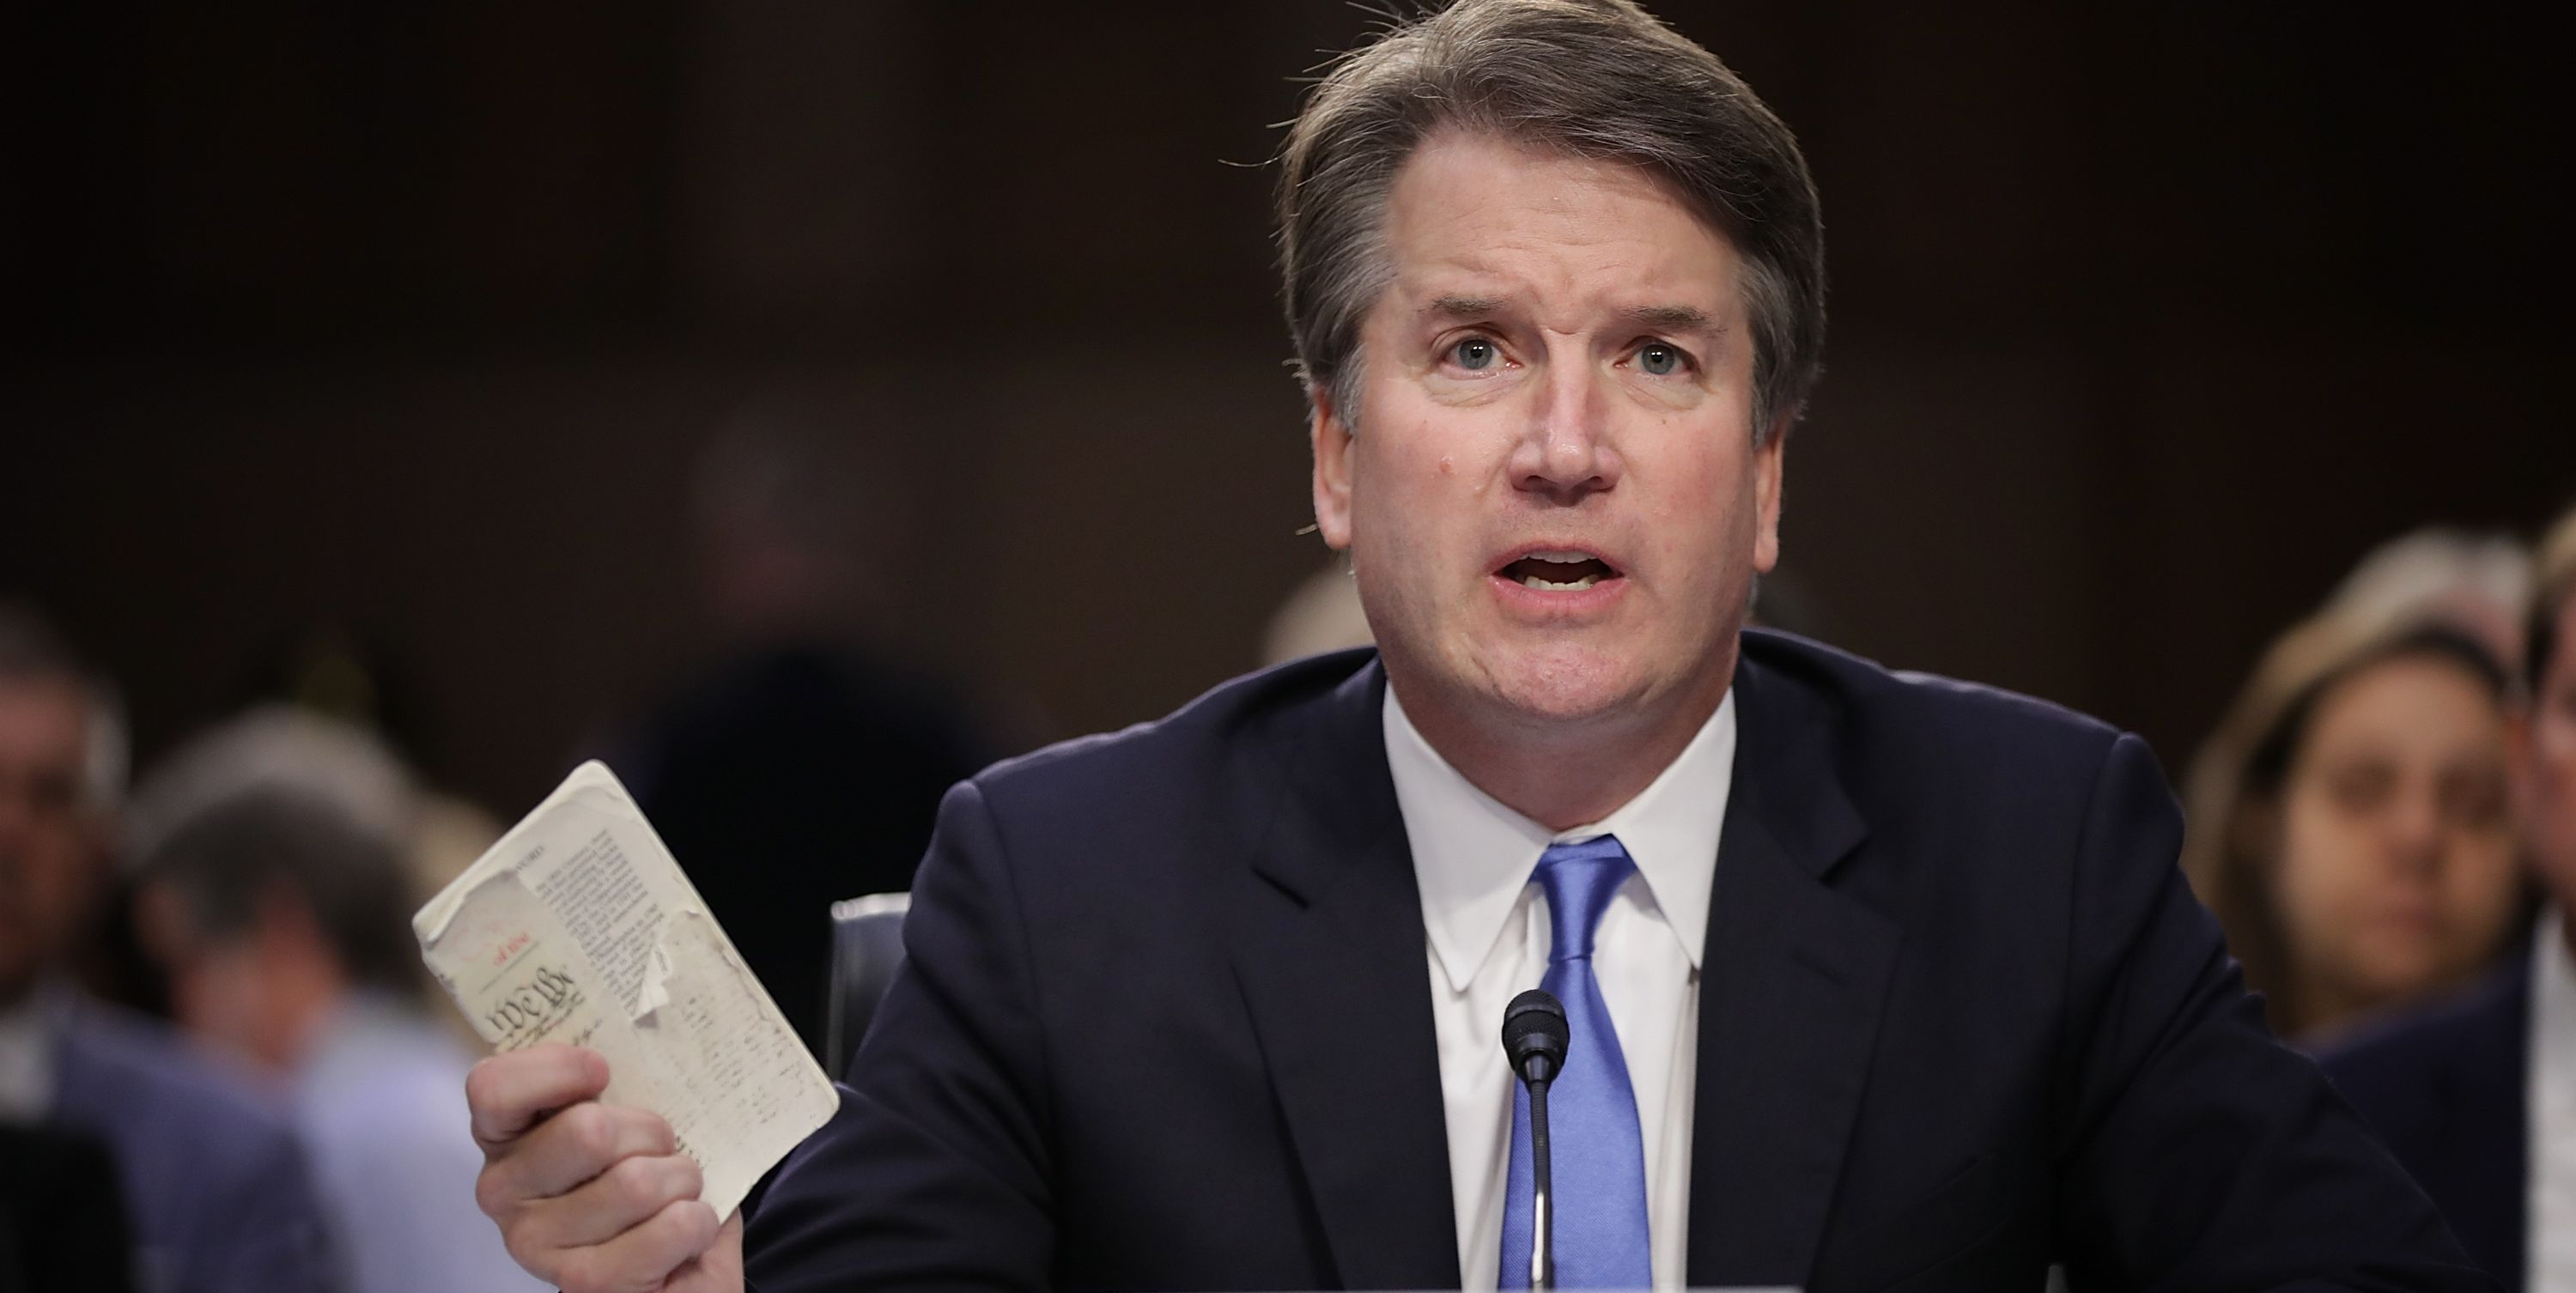 Senate Holds Confirmation Hearing For Brett Kavanaugh To Be Supreme Court Justice